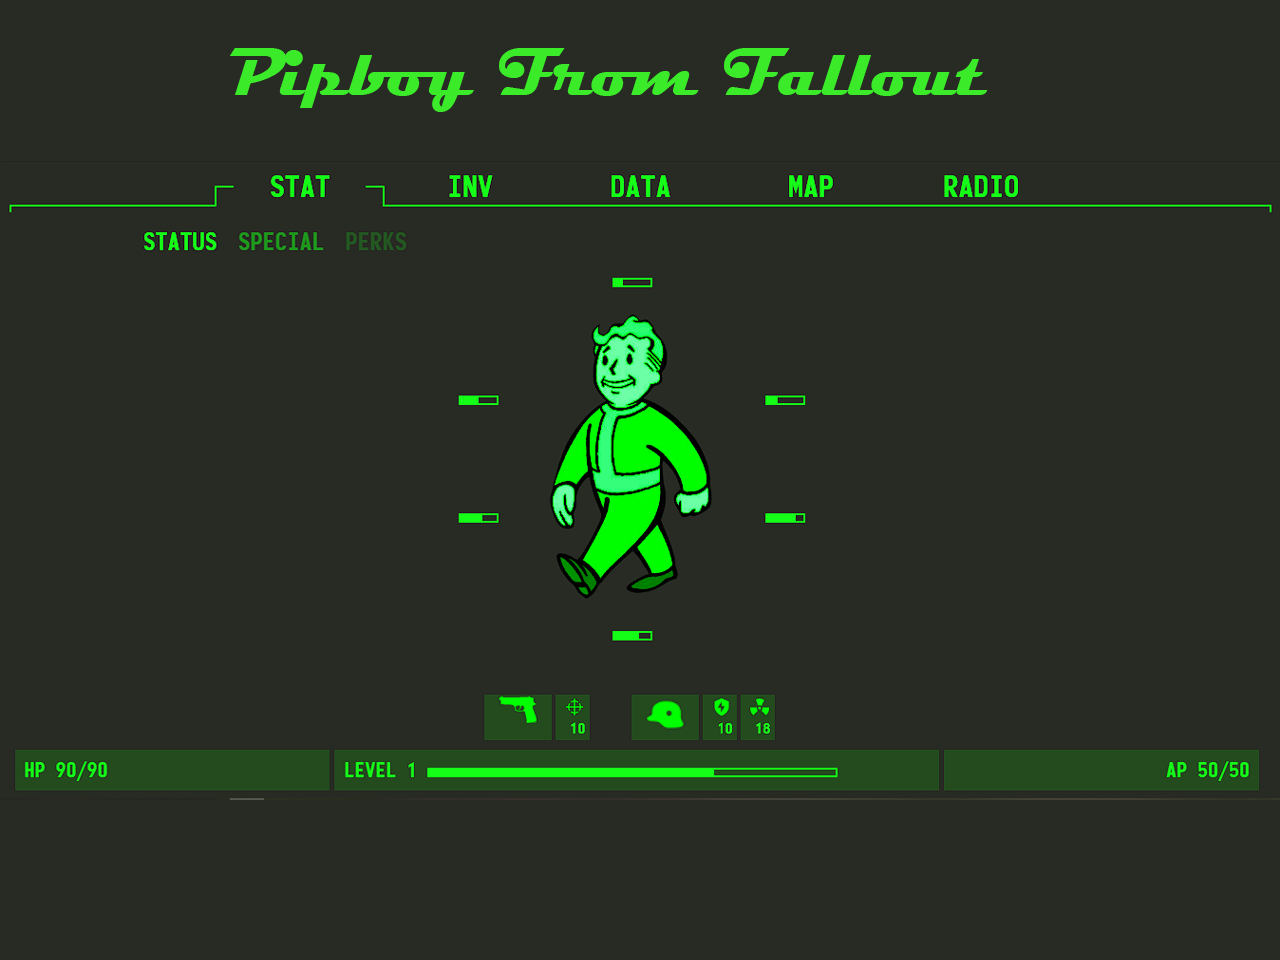 Pipboy from fallout 4 in HTML, CSS with Source code